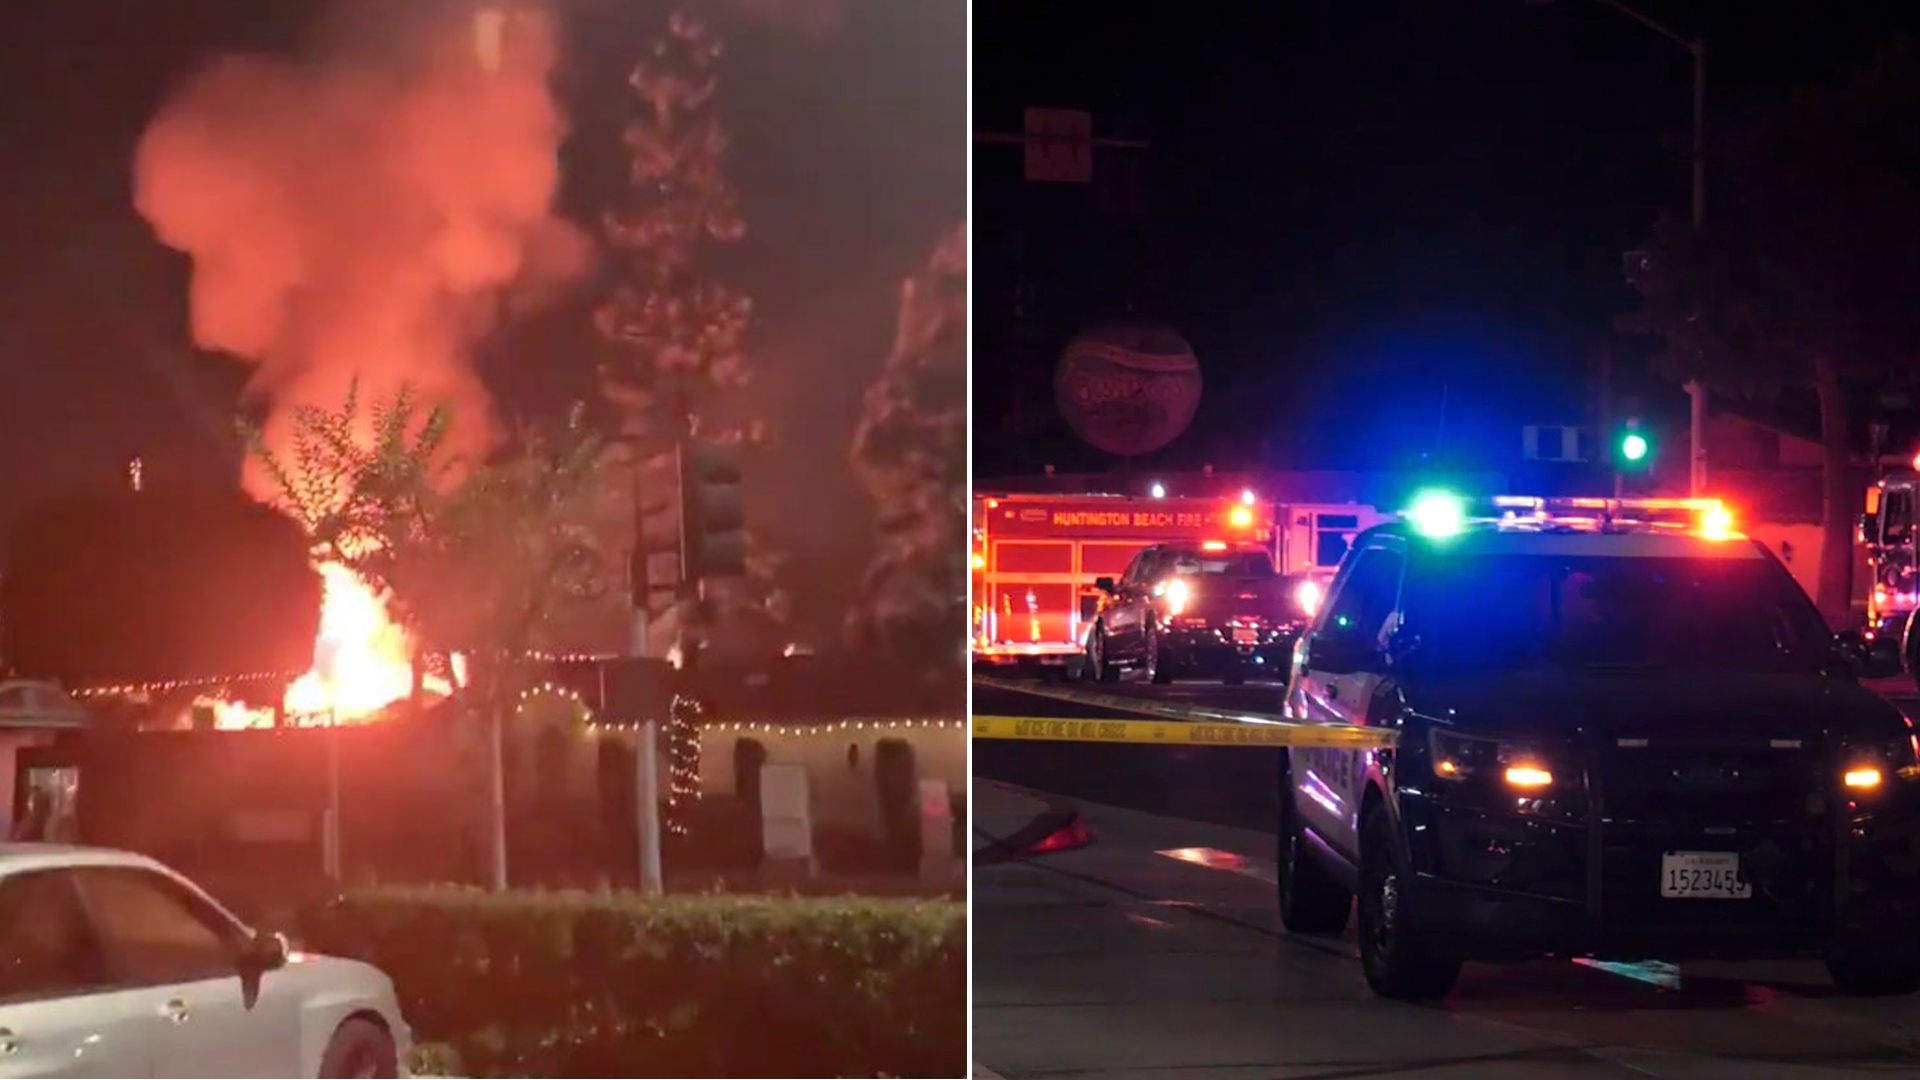 Authorities respond to an explosion that rattled an Oktoberfest celebration at Huntington Beach on Oct. 5, 2019. (Kyle Nelson, KTLA)